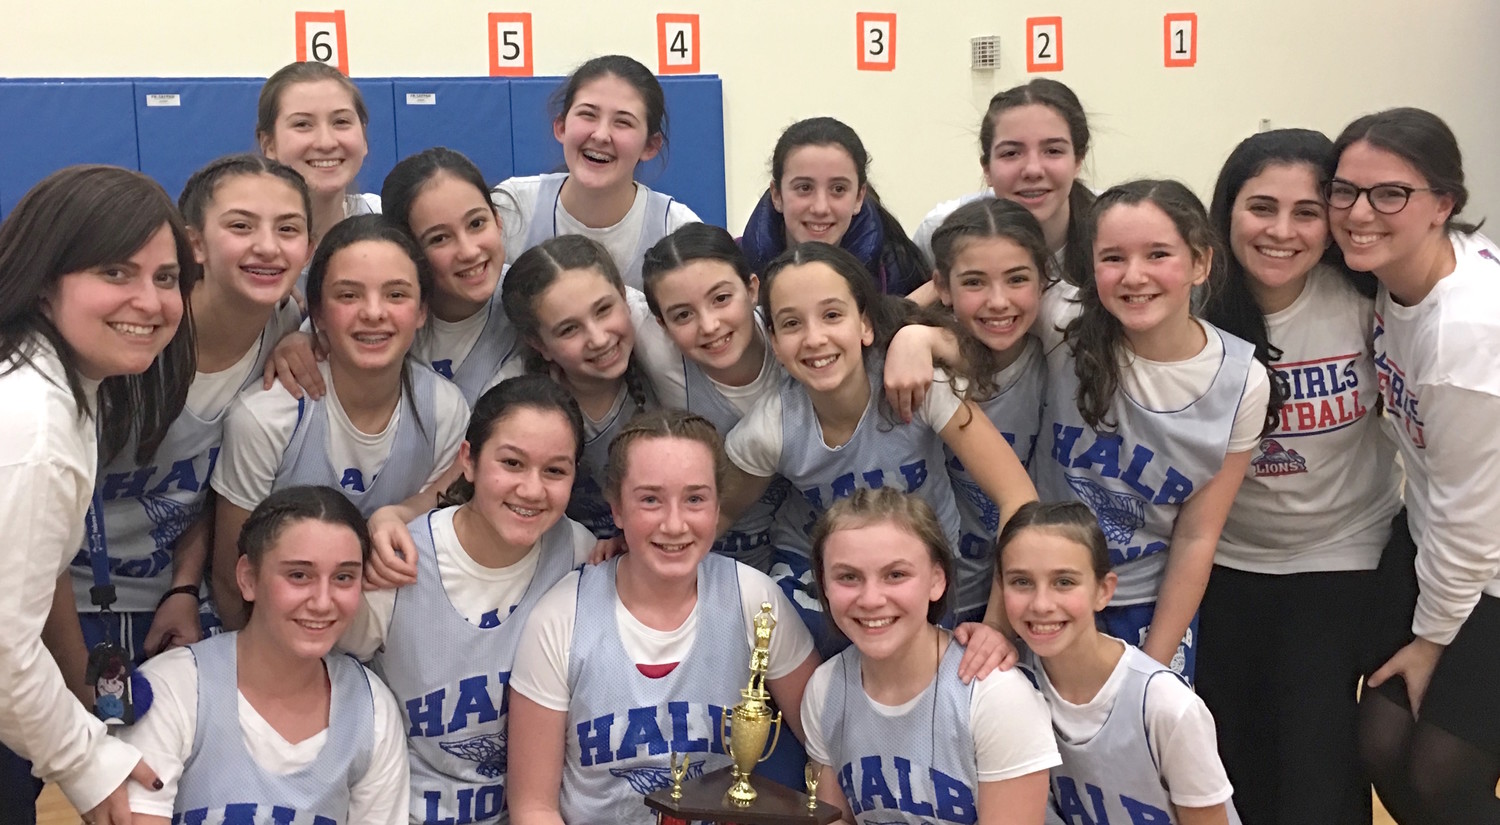 HALB's happy team — back row: Kayla Muchnick, Helaina Singer, Emily Froleich (manager), and Danielle Abelson; middle row: Morah Farbman, Ahuva Singer, Leora Konig, Leora Ellenberg, Chloe Dershowitz, Kayla Wang, Rebecca Brown, Meghan Gottfried, Kayla Goldberg, and  coaches Sara Fellus and Gabi Mlotok; front row: Naomi Sigman, Atara Sicklick (MVP), Simona Goldberg, Zahava Aryeh, and Jamie Feder.